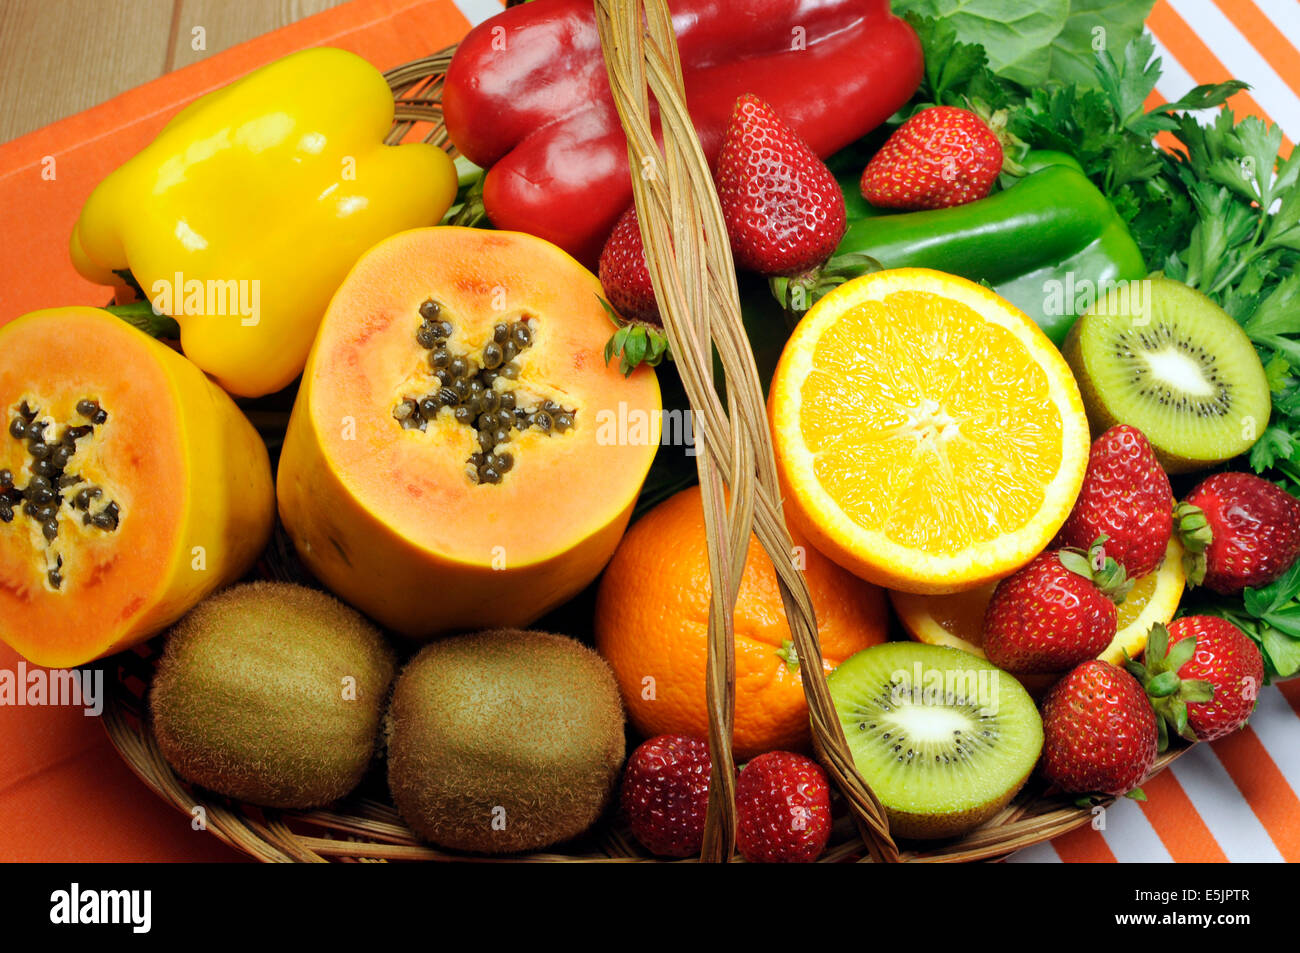 Healthy diet - sources of Vitamin C - oranges, strawberry, bell pepper capsicum, kiwi fruit, paw paw, spinach dark - Stock Image